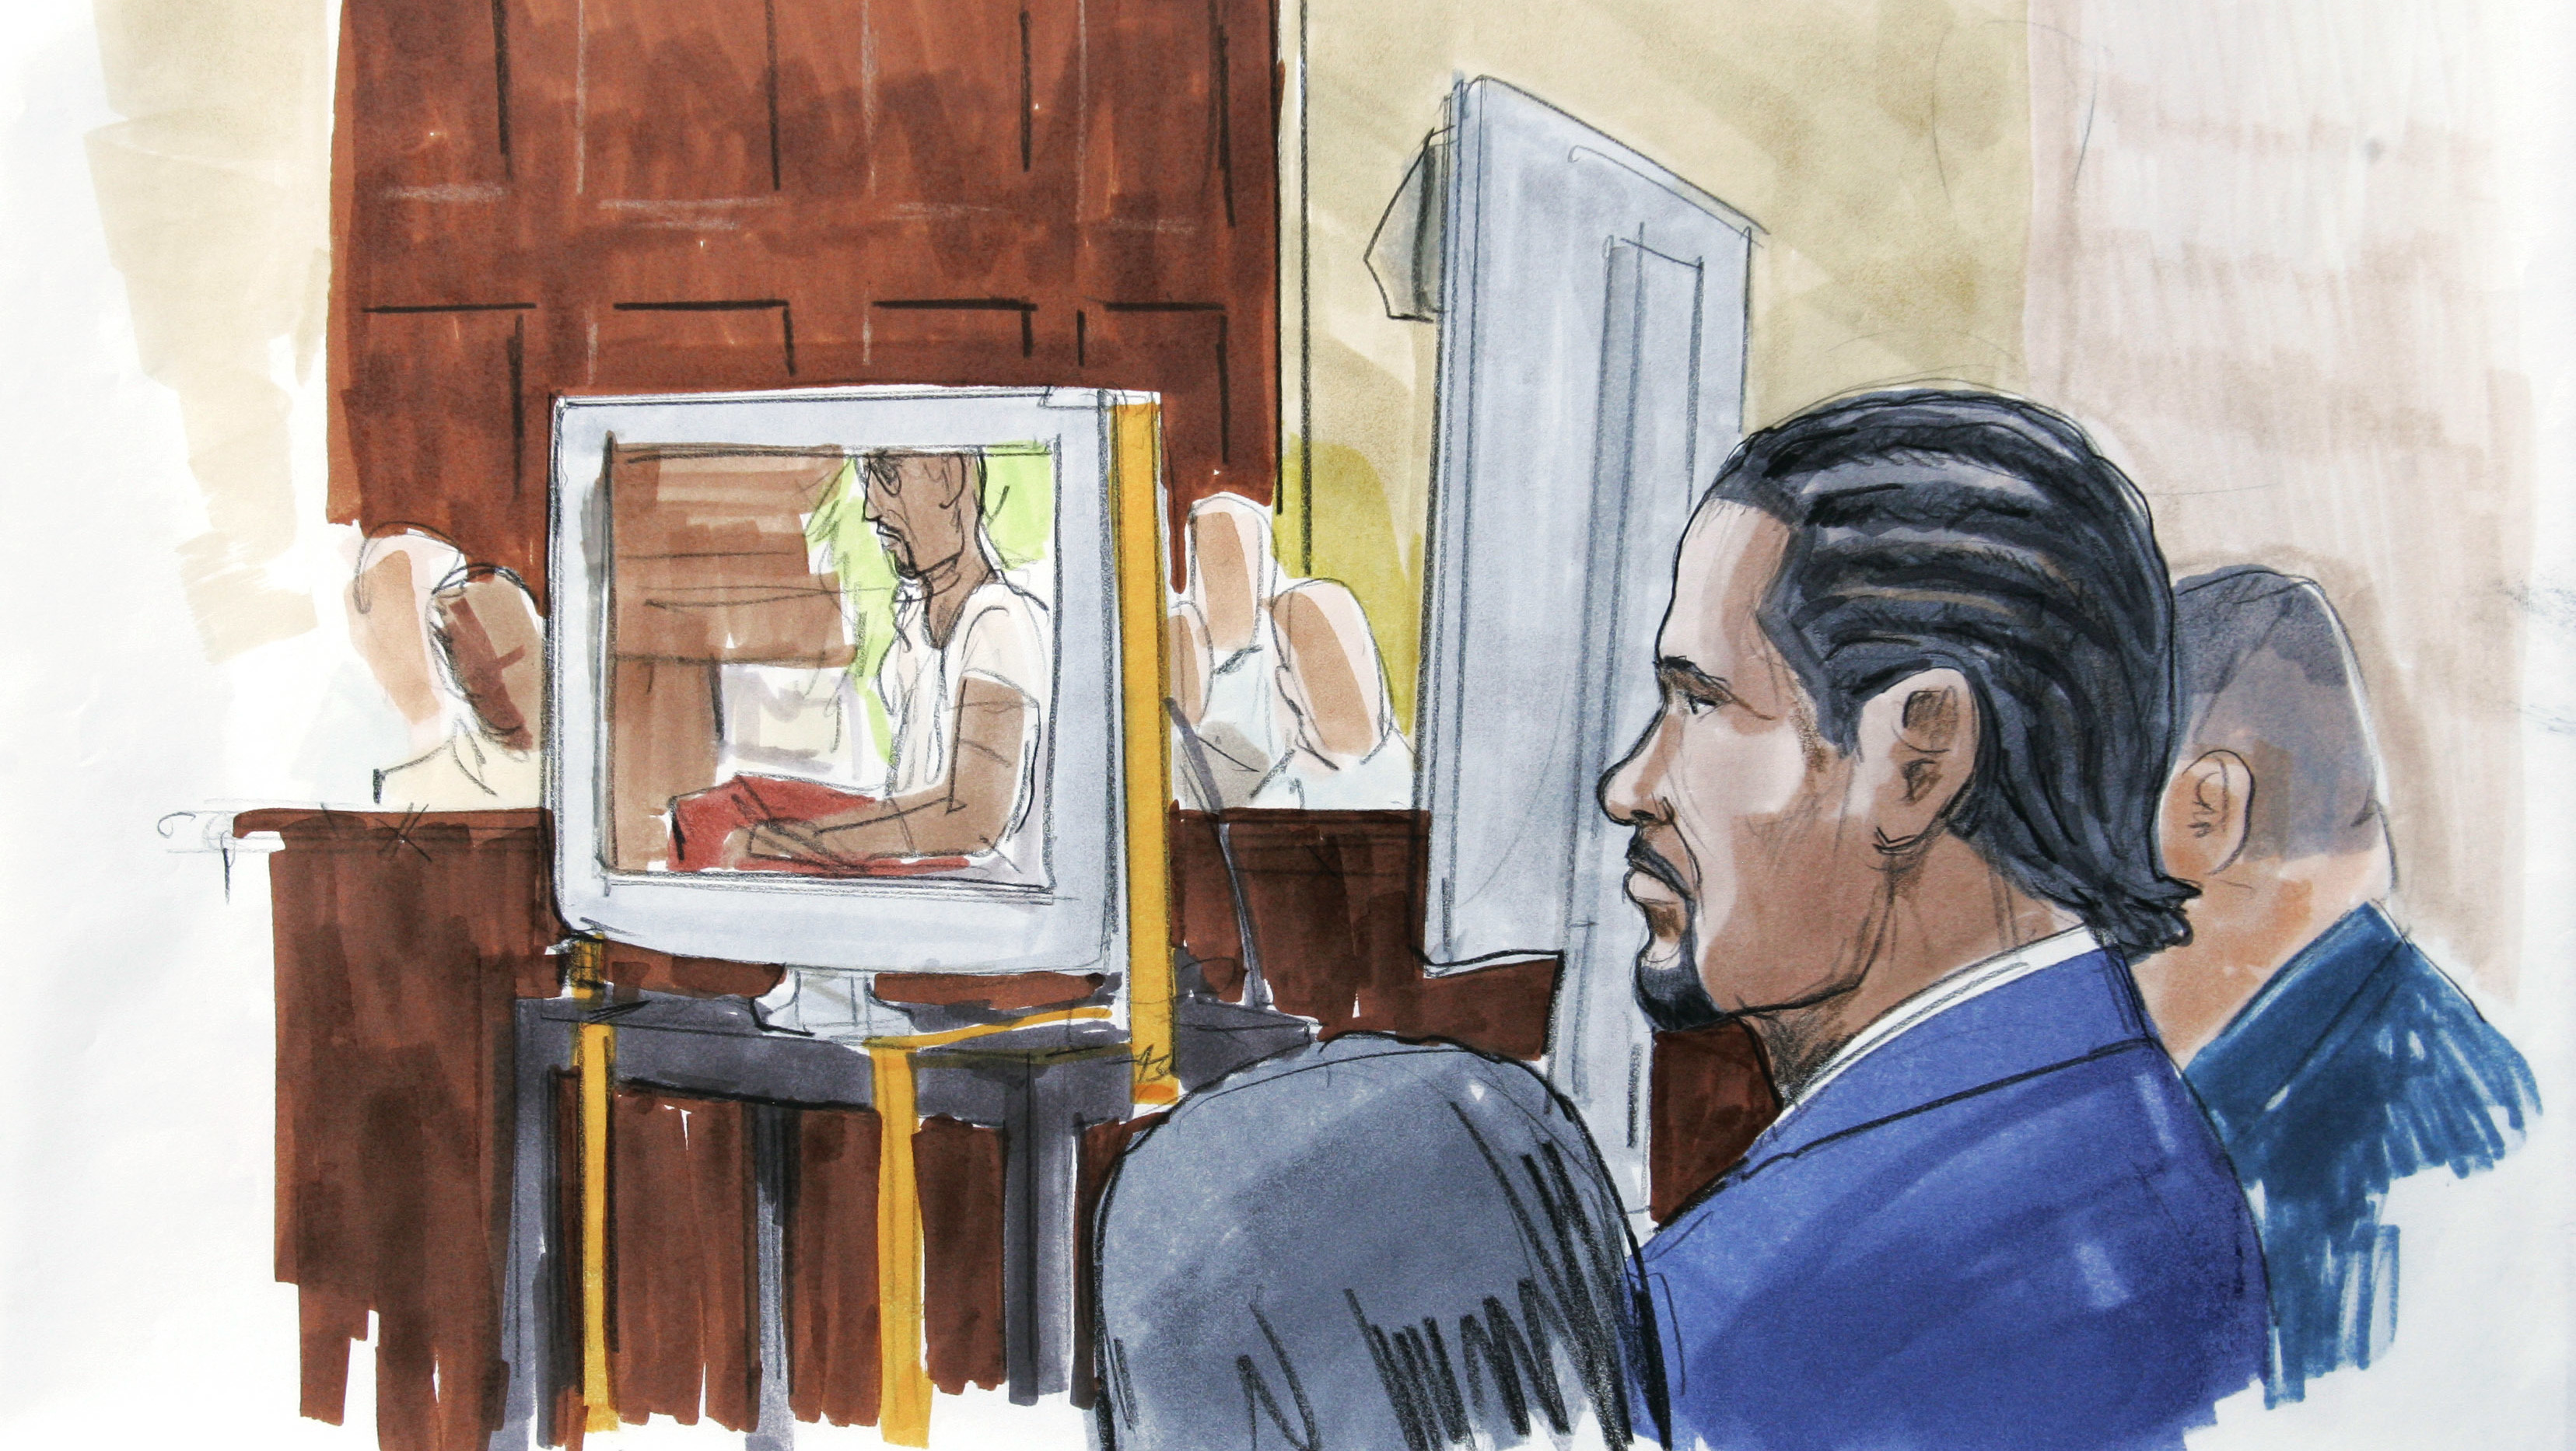 9f85a42dfe4e An artist s rendering shows R. Kelly watching in court as prosecutors play  the sex tape at the center of his 2008 child pornography trial in Chicago